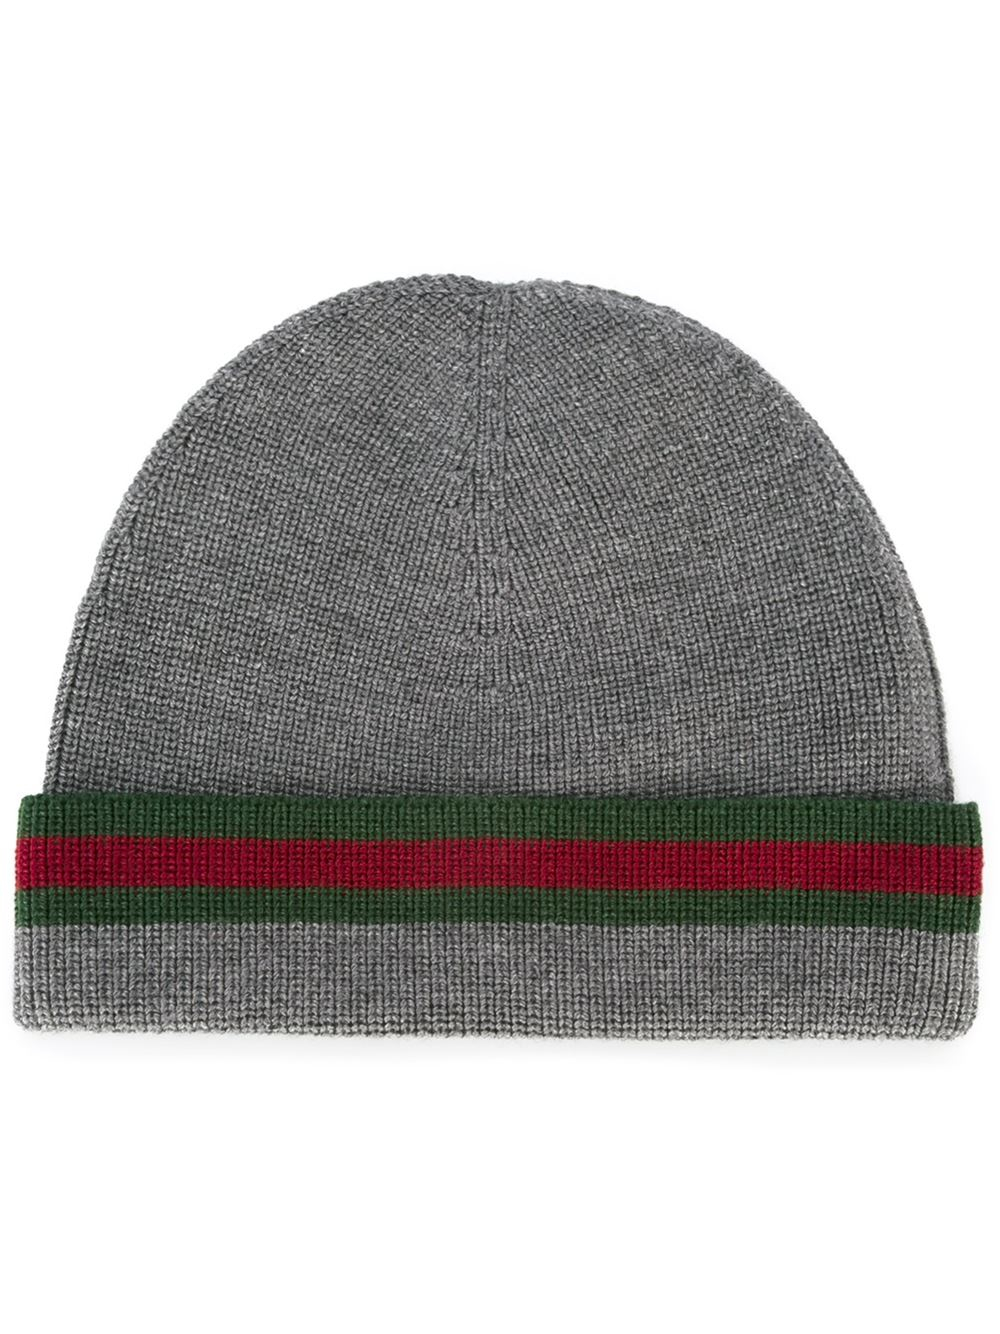 Lyst - Gucci Wool-silk Beanie Hat in Gray for Men a441bf2c758